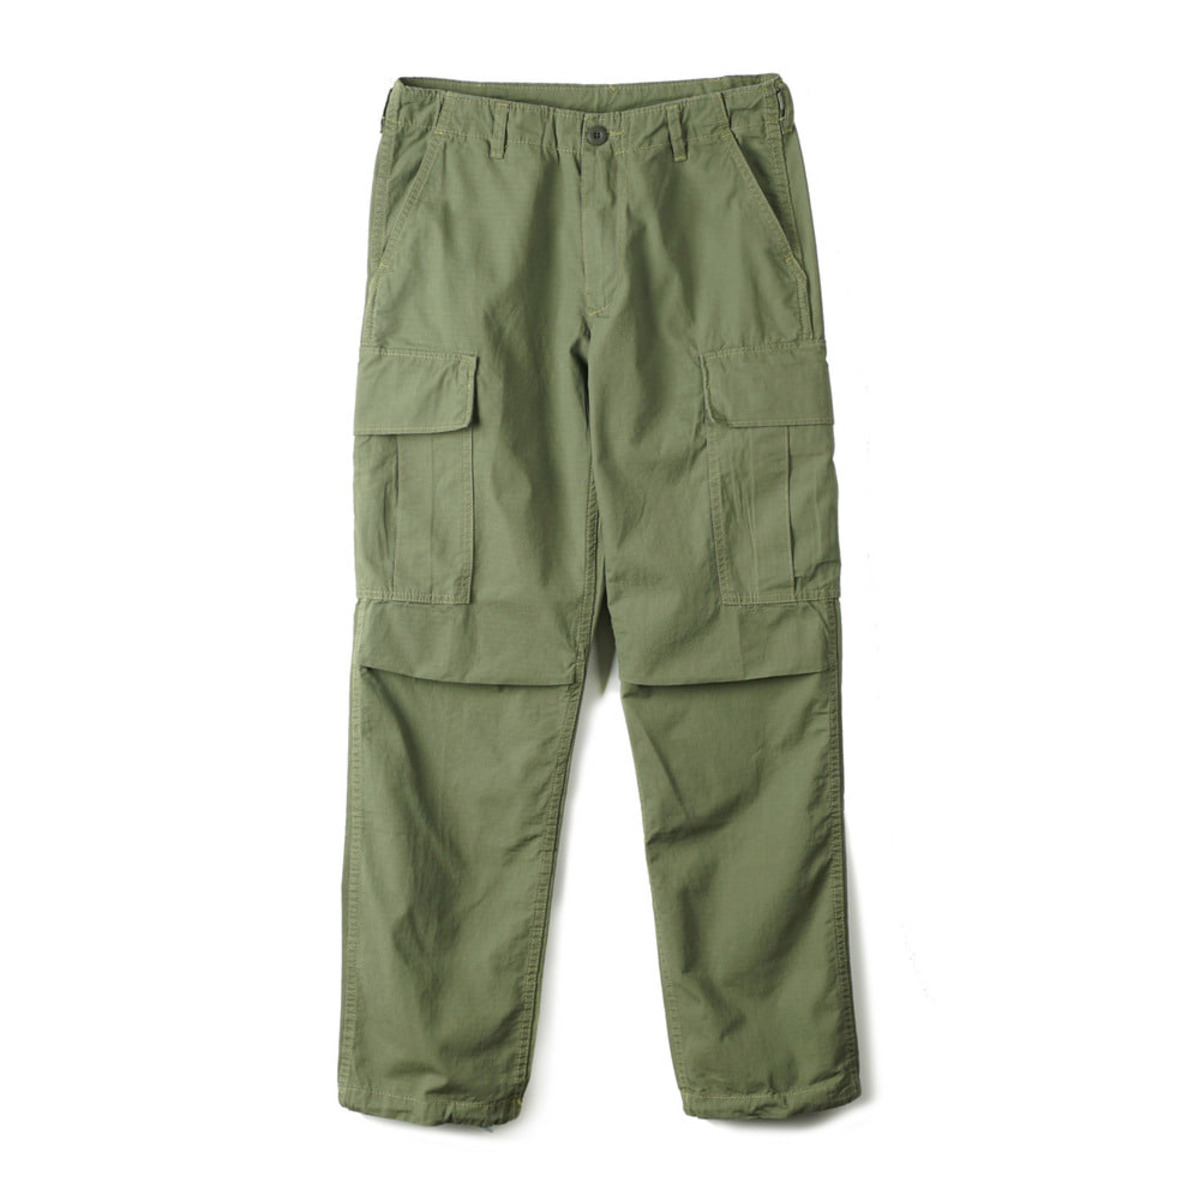 [YMCL KY] YMCL KY JUNGLE FATIGUE PANTS 4TH MODEL 'OLIVE'